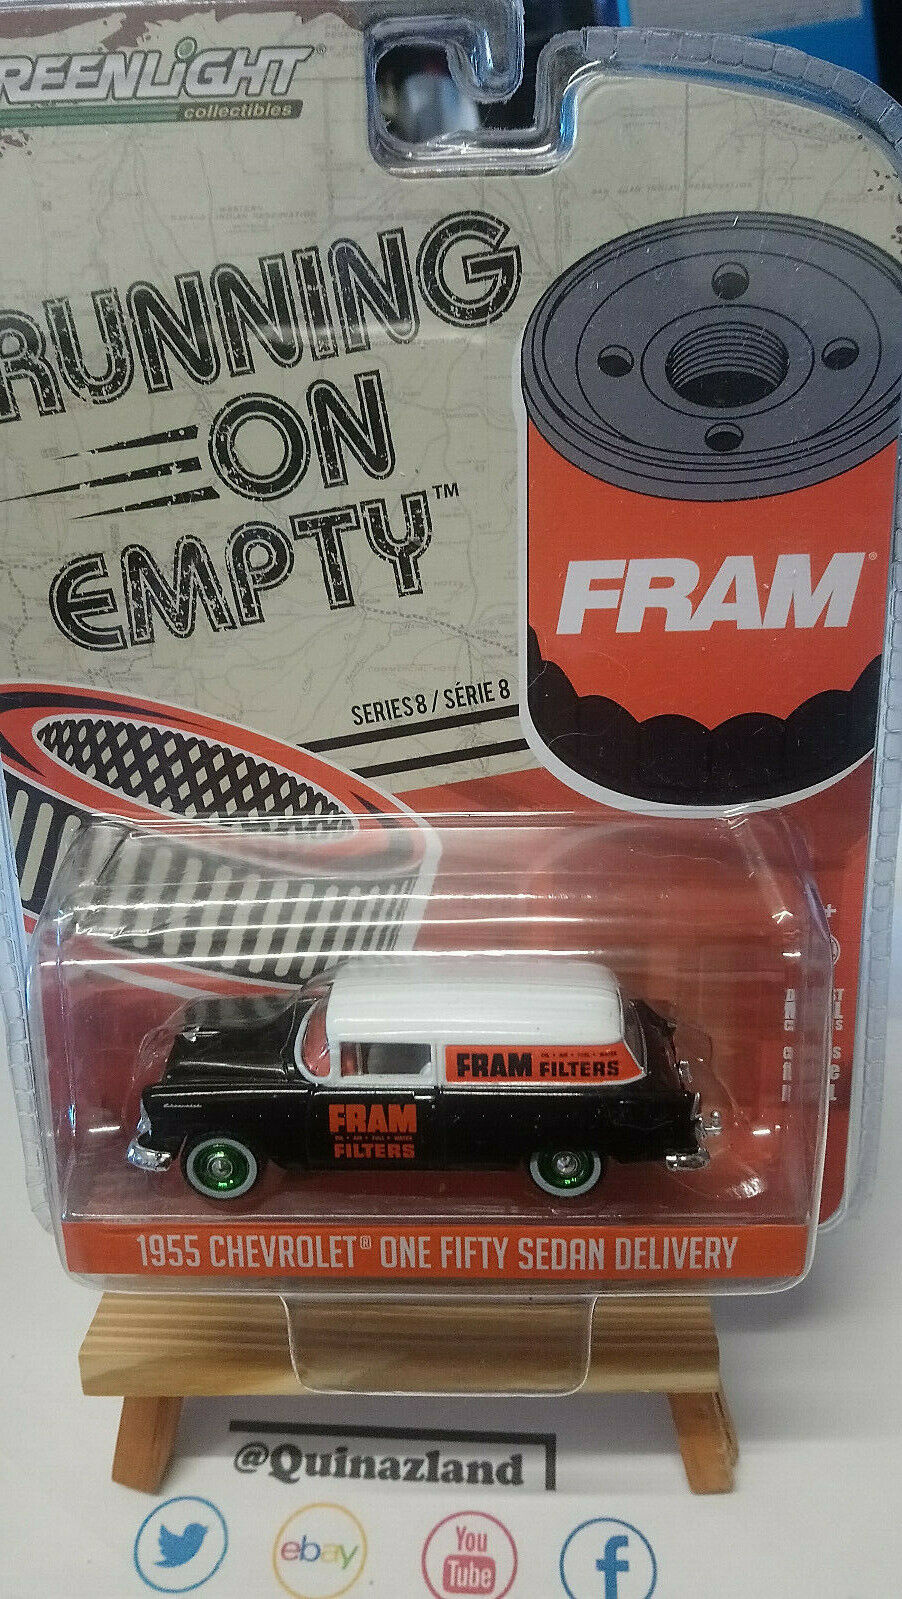 Greenlight running on empty 1955 chevrolet one fifty sedan delivery chase (n36)